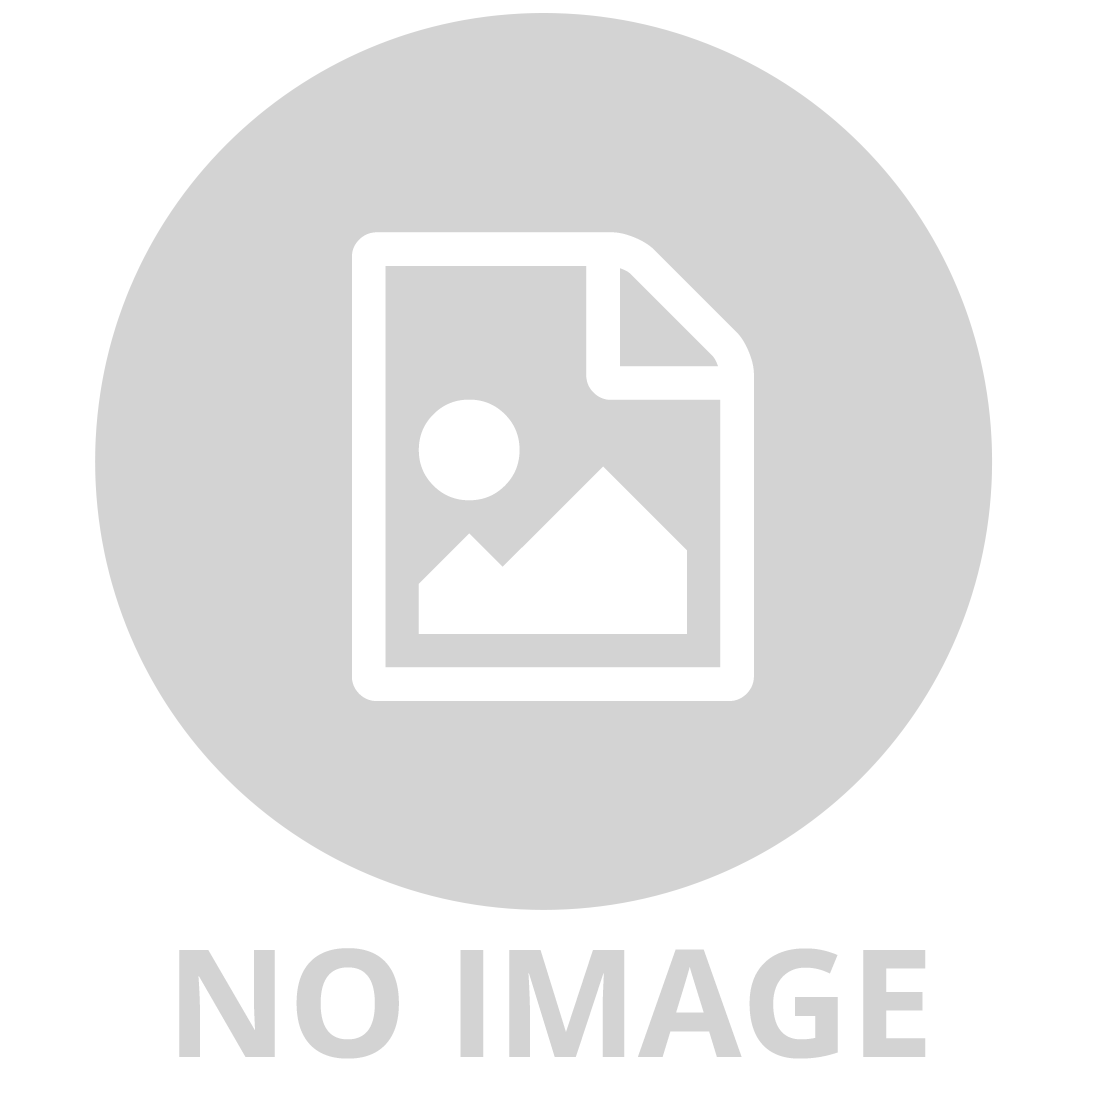 CAP GUN 8 SHOT DIECAST 4.25 REVOLVER WITH SILENCER